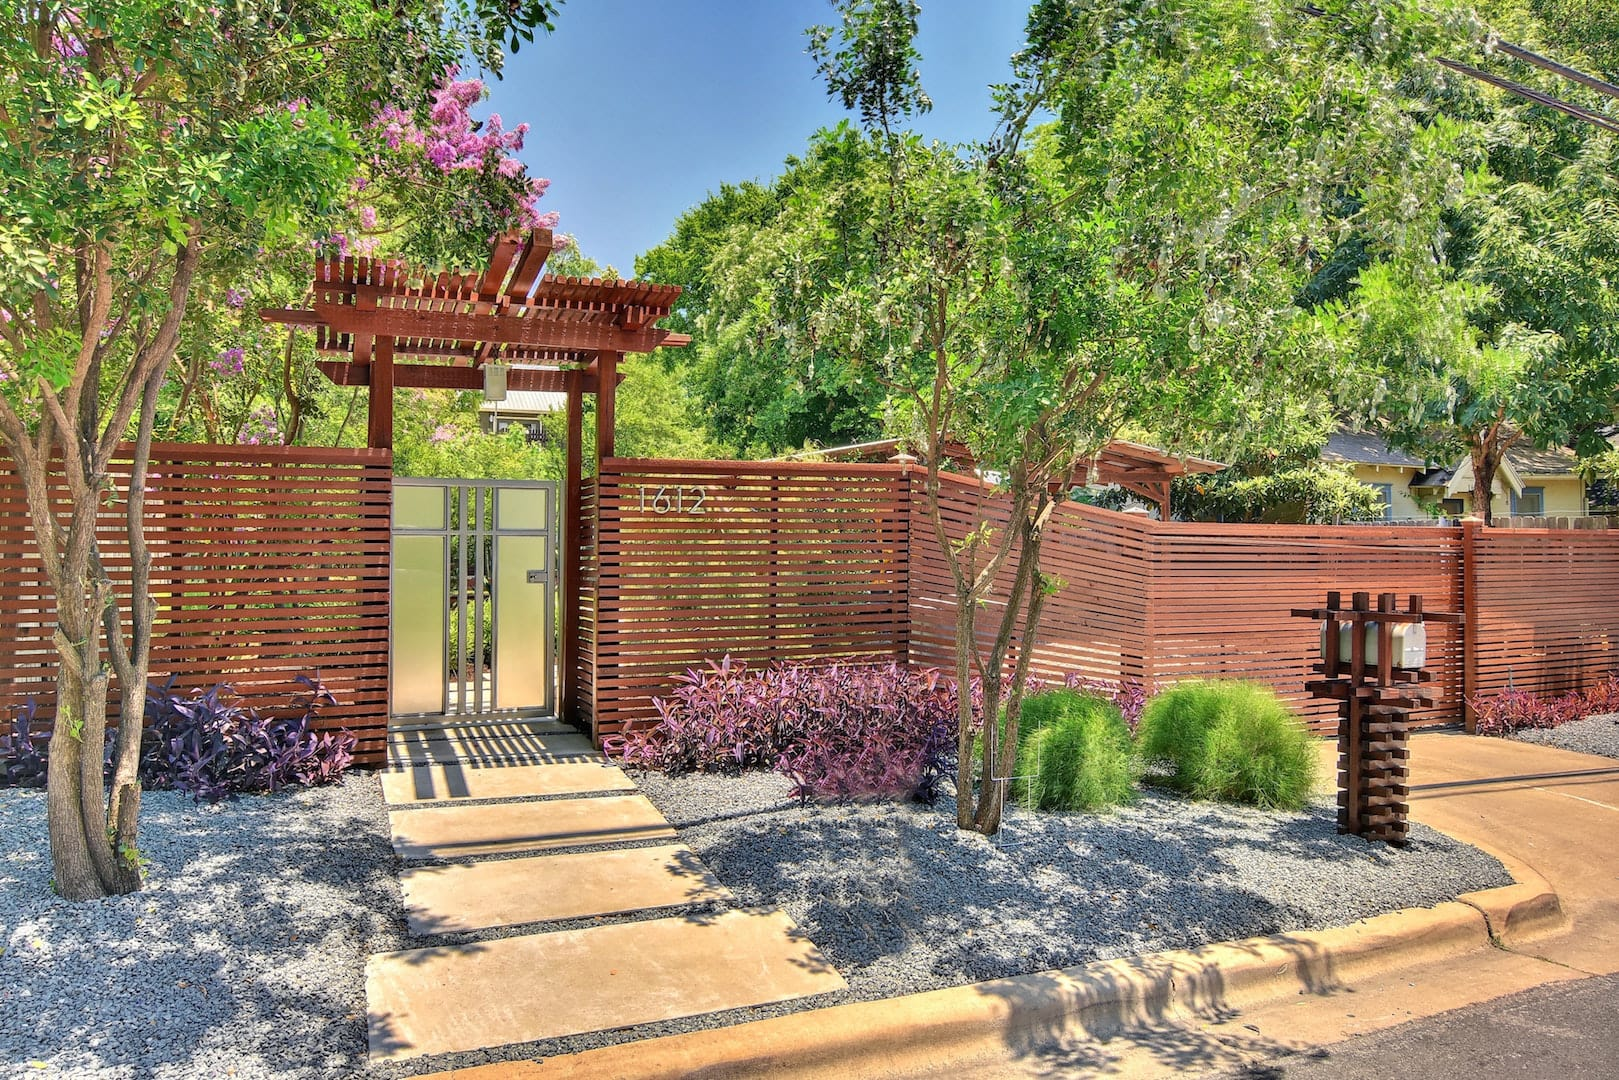 Invest in landscaping to update your home's curb appeal